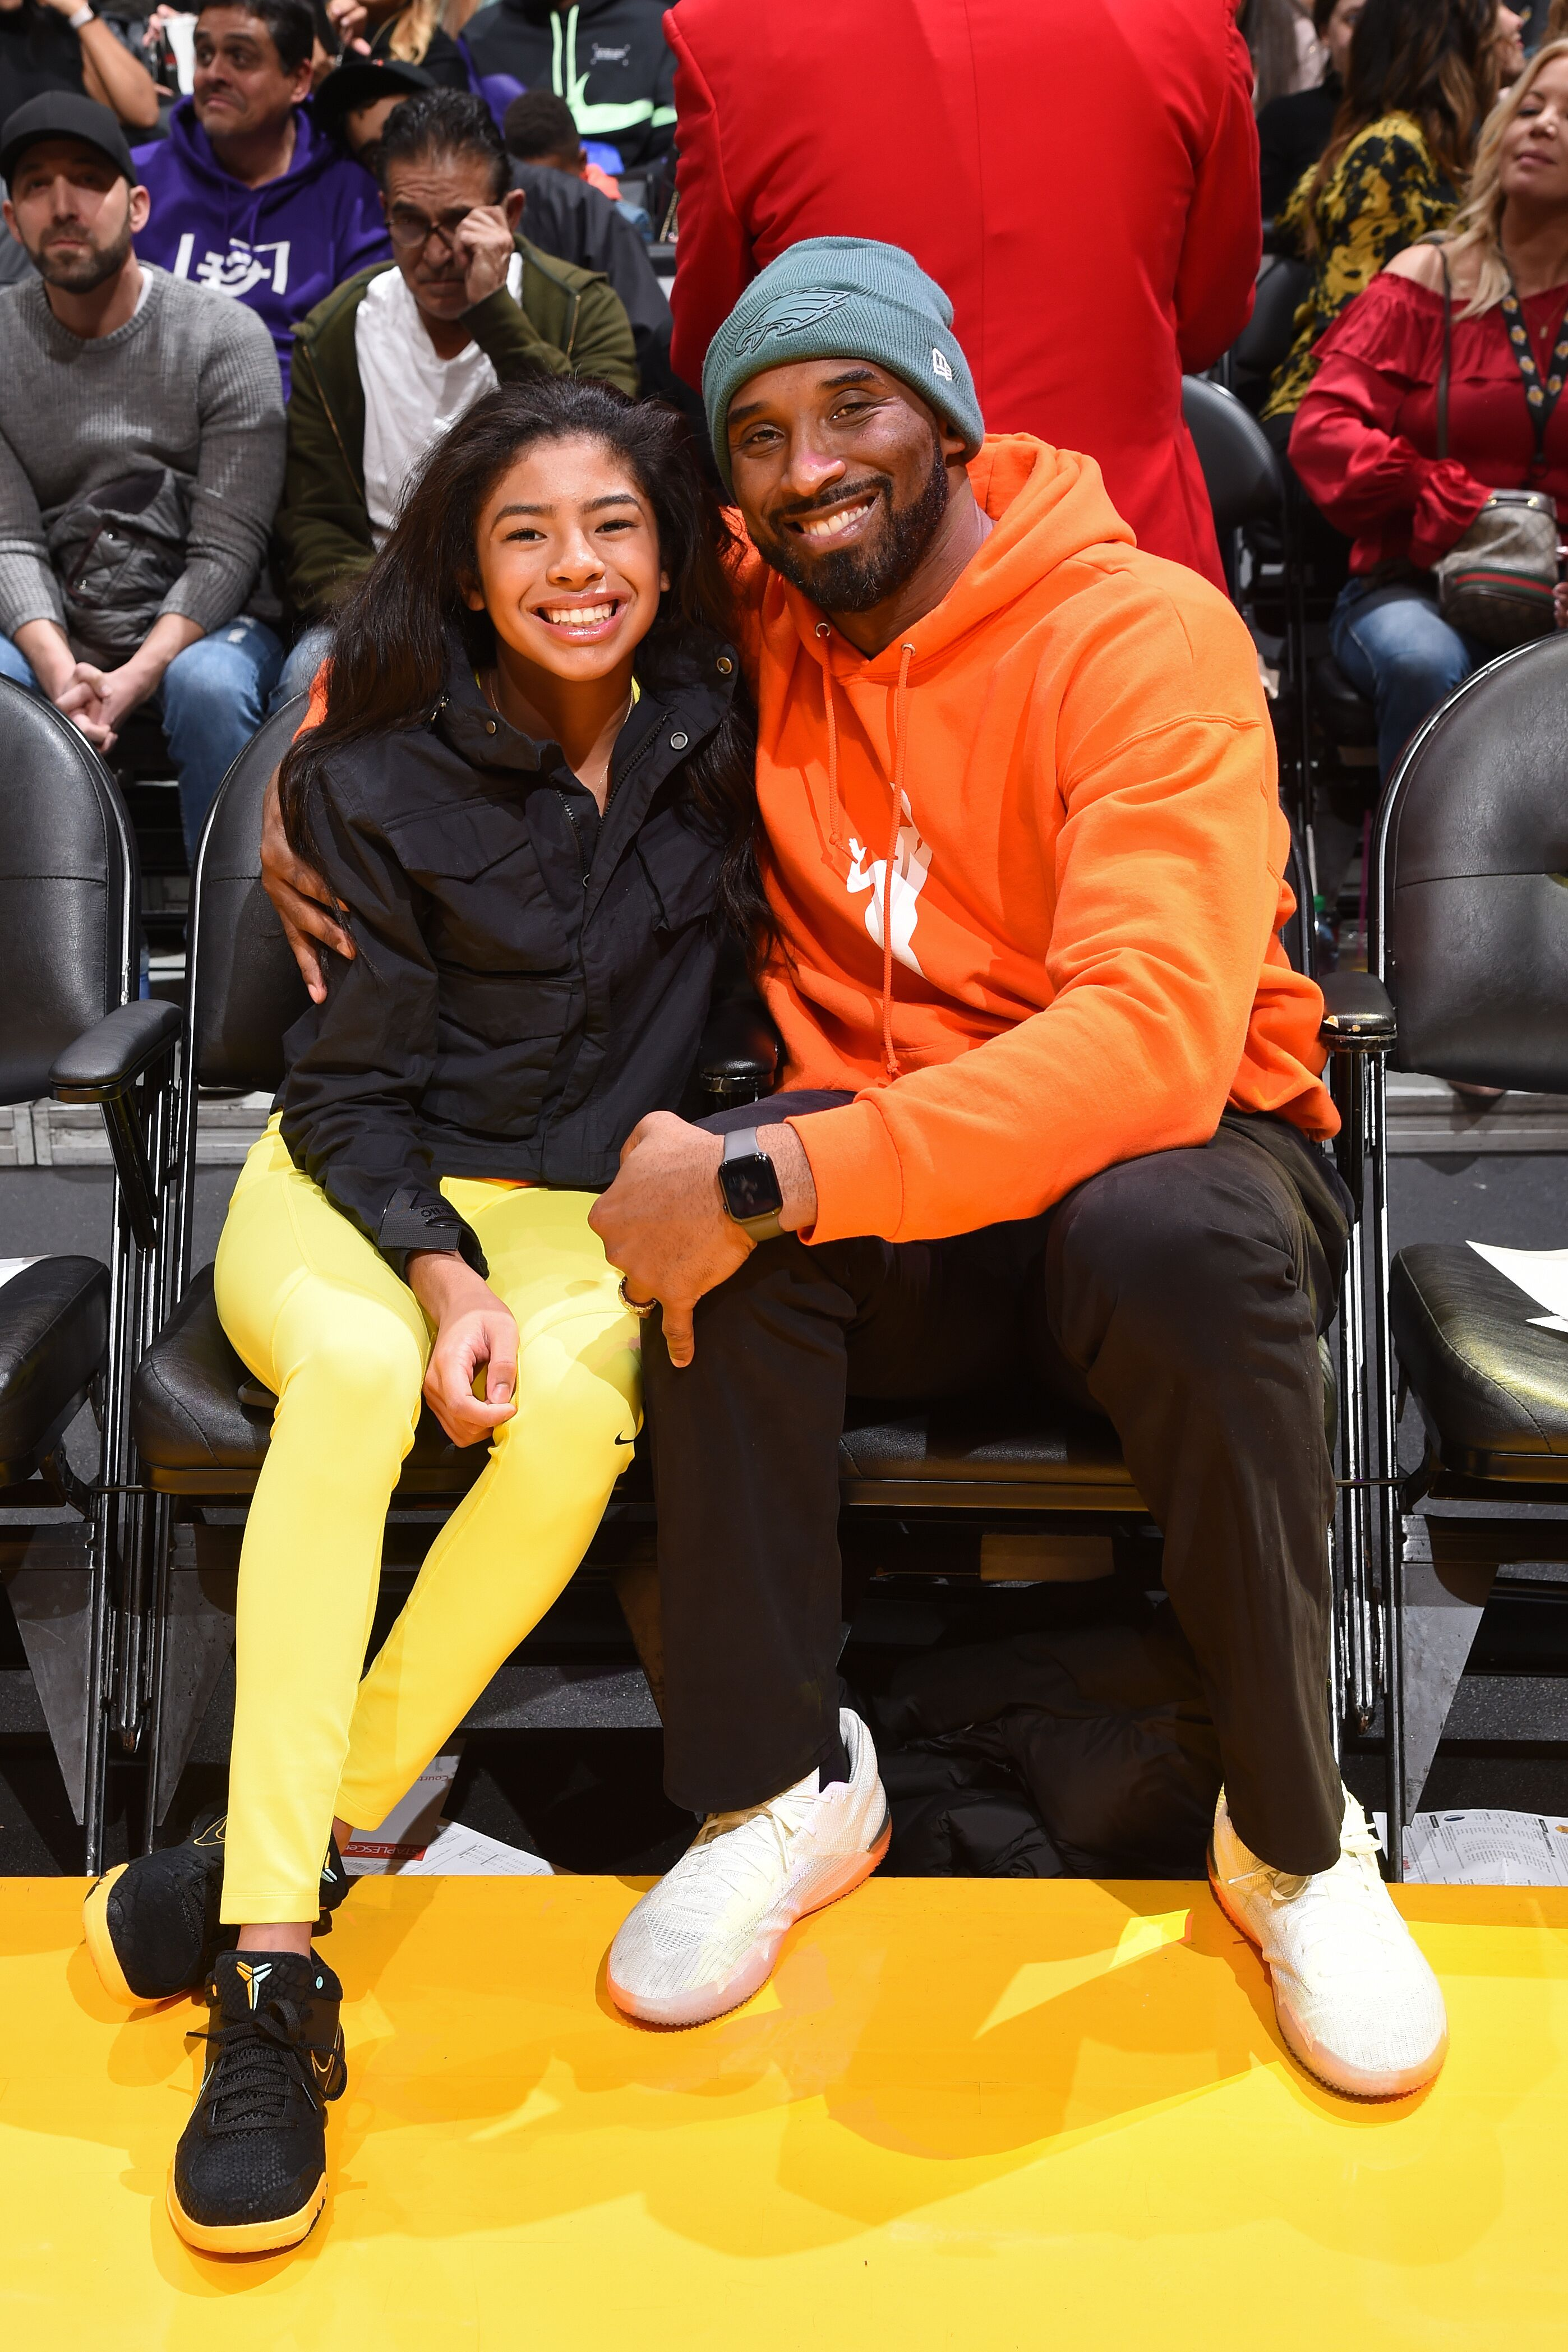 Kobe and Gianna Bryant attend a WNBA game together | Source: Getty Images/GlobalImagesUkraine